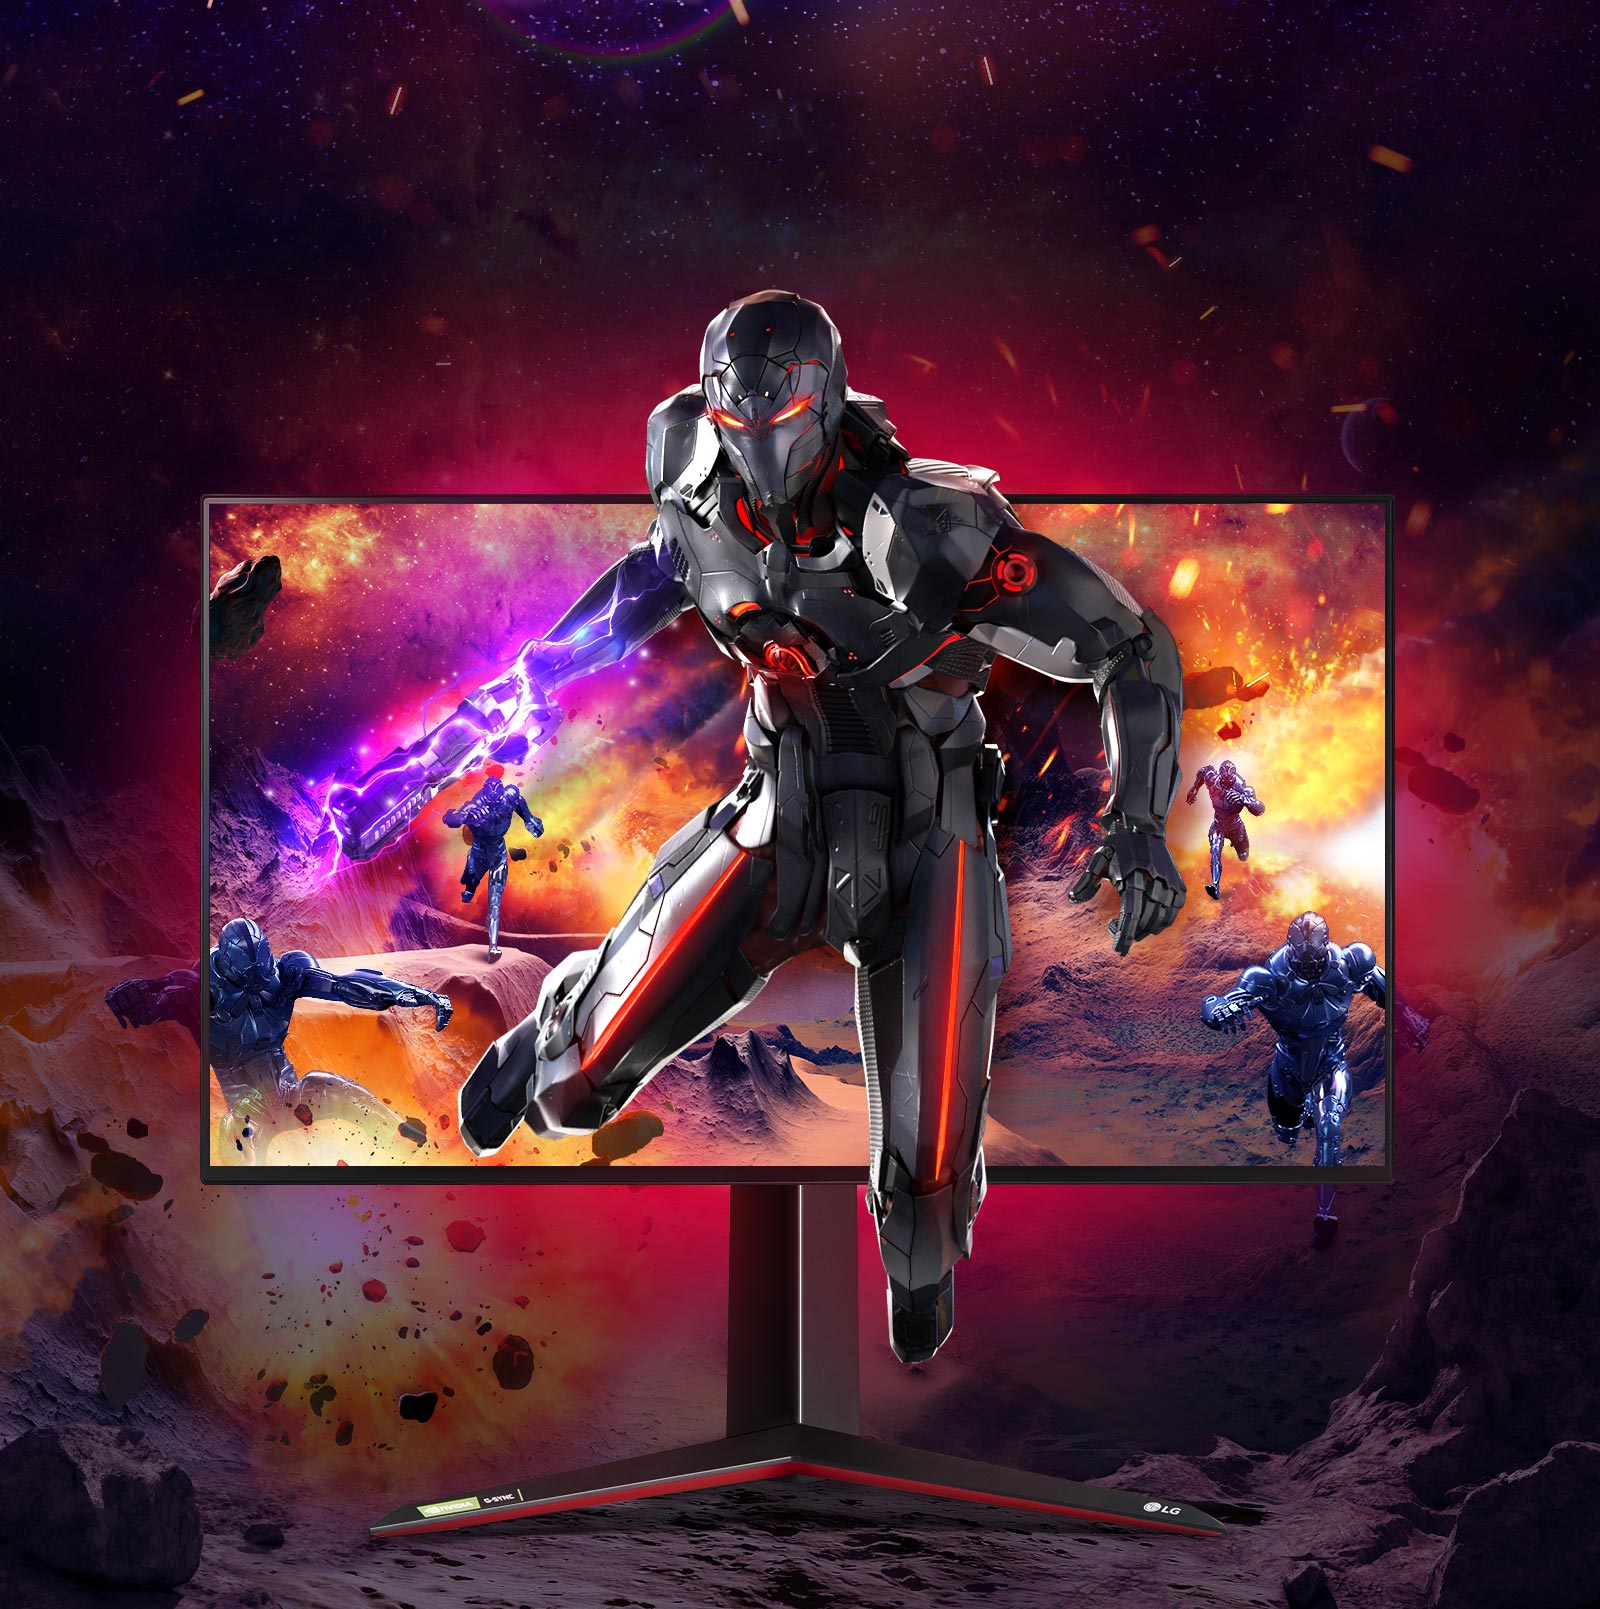 LG UltraGear 27GN950 B Gaming Monitor Features 1